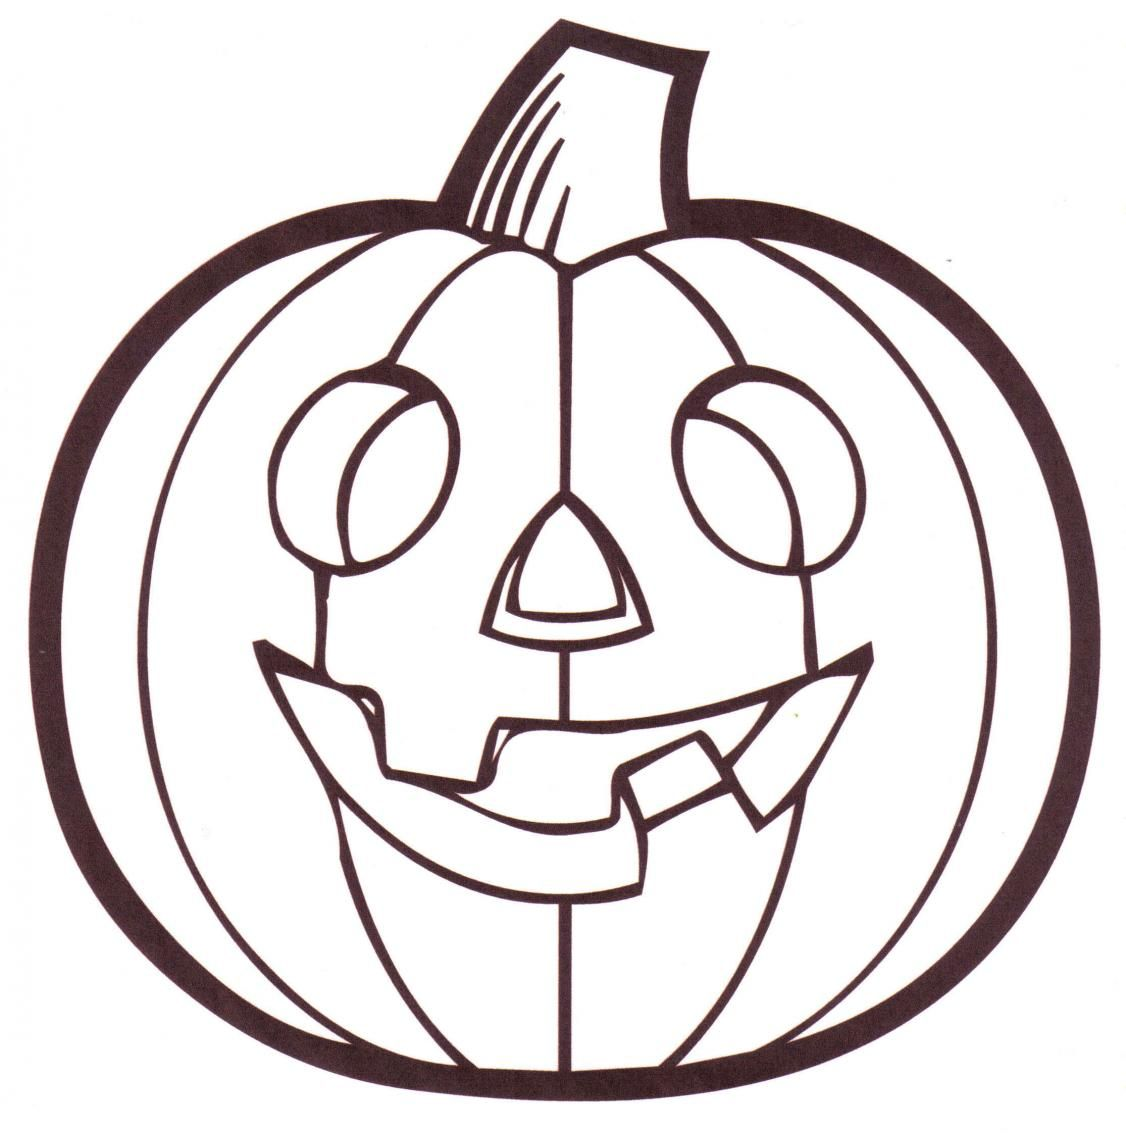 Free Printable Pumpkin Coloring Pages For Kids Halloween Coloring Sheets Pumpkin Coloring Pages Pumpkin Coloring Sheet